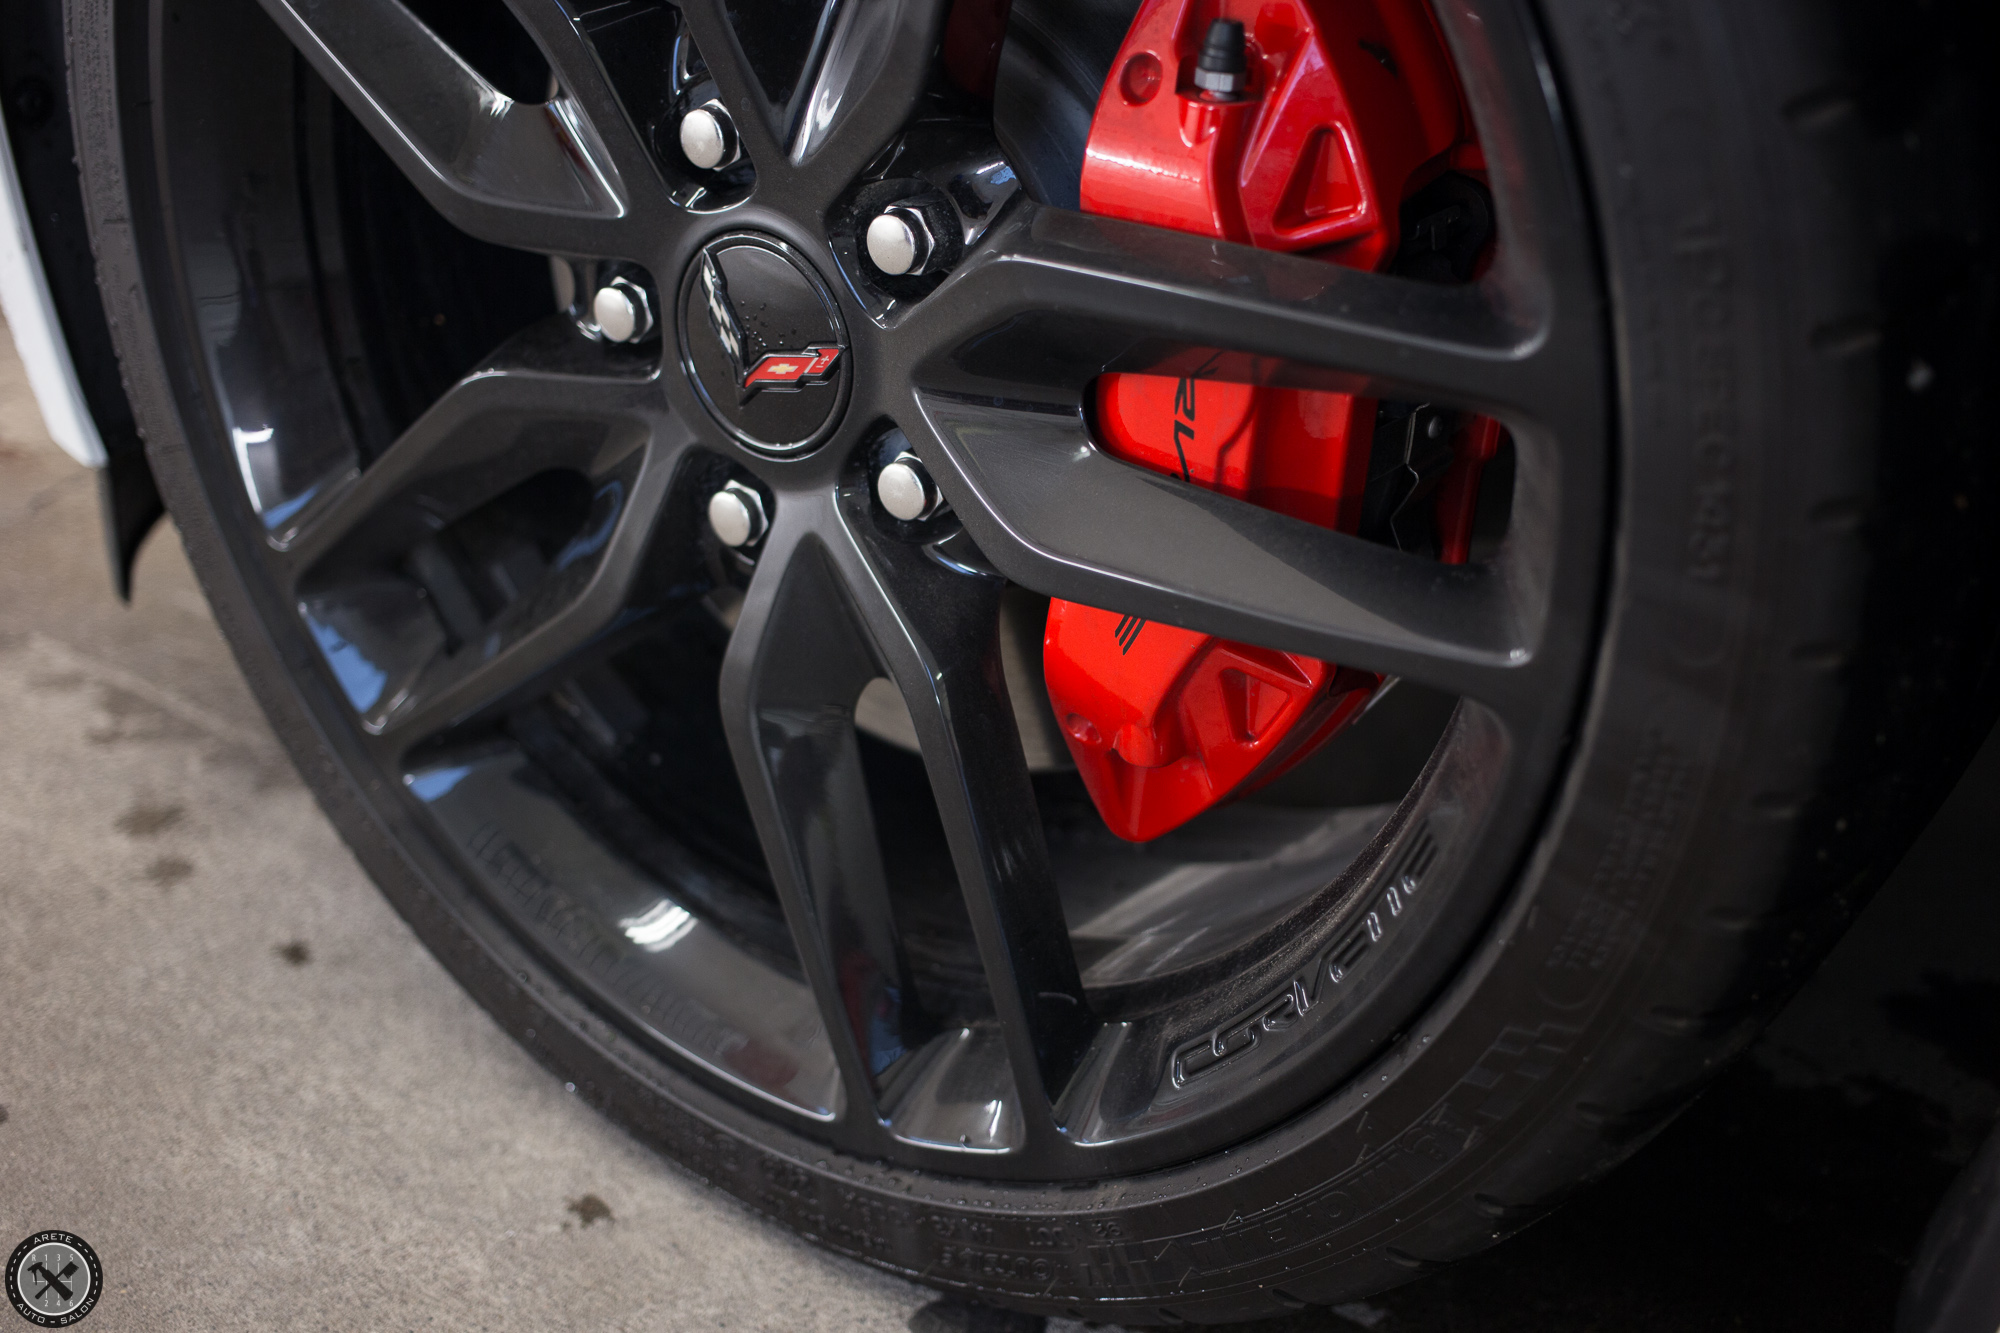 The big brakes on this 'Vette managed to kick out plenty of dust in the few short miles it had traveled.